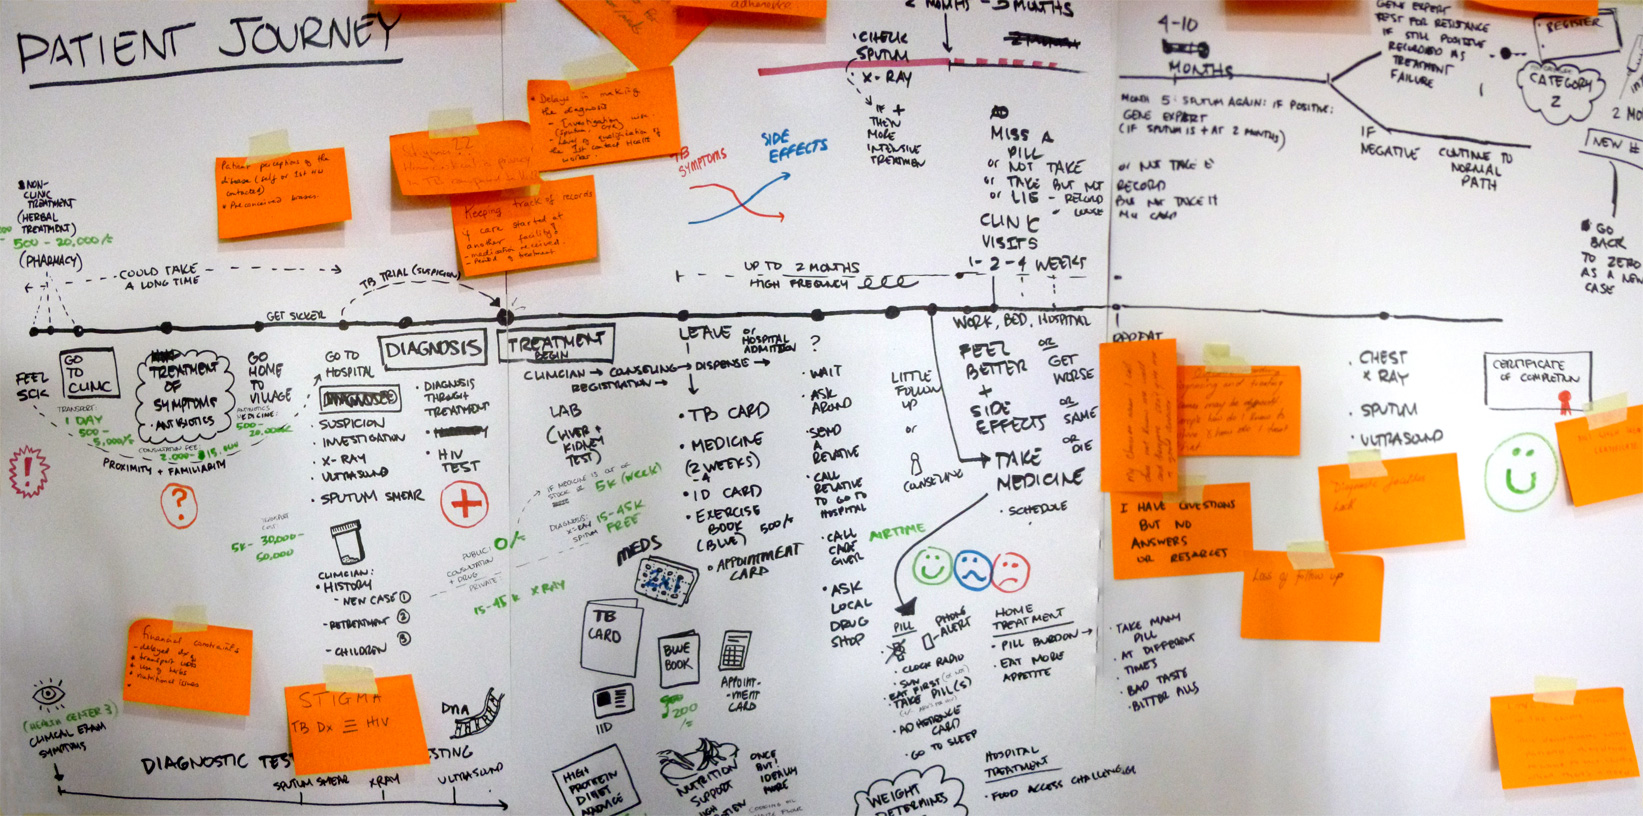 Method: user journey map. Together the group shared their deep expertise around the patient journey to build empathy and shared understanding.